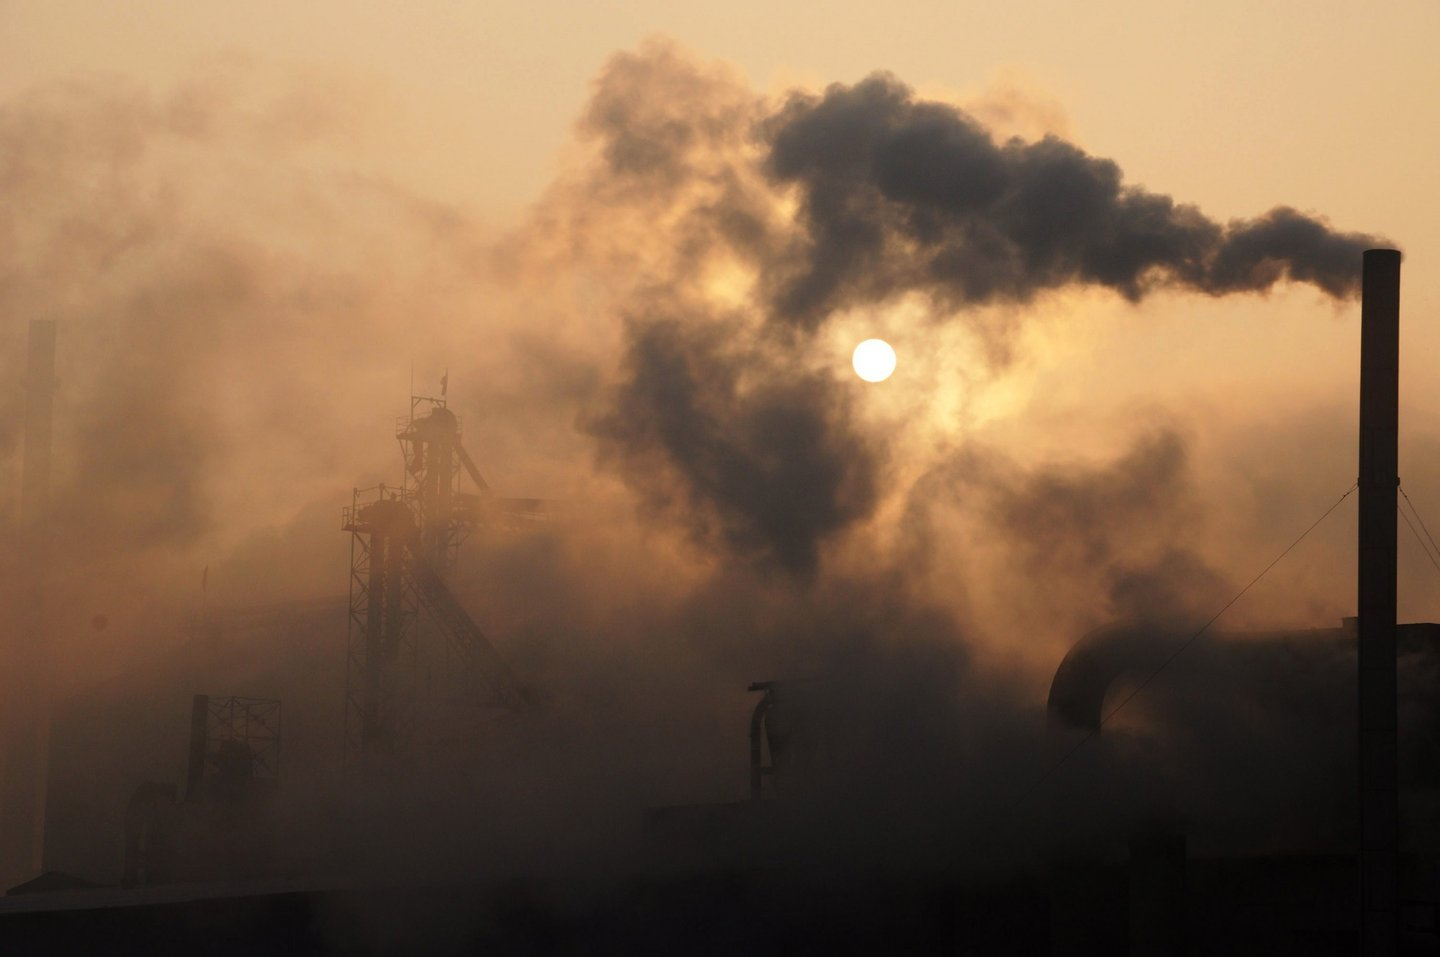 This picture taken on January 17, 2013 shows a cement factory releasing heavy smoke in Binzhou, in eastern China's Shandong province. China's economy grew at its slowest pace in 13 years in 2012, the government said on January 18, but an uptick in the final quarter pointed to better news ahead for a prime driver of the tepid global recovery.  CHINA OUT     AFP PHOTO        (Photo credit should read STR/AFP/Getty Images)